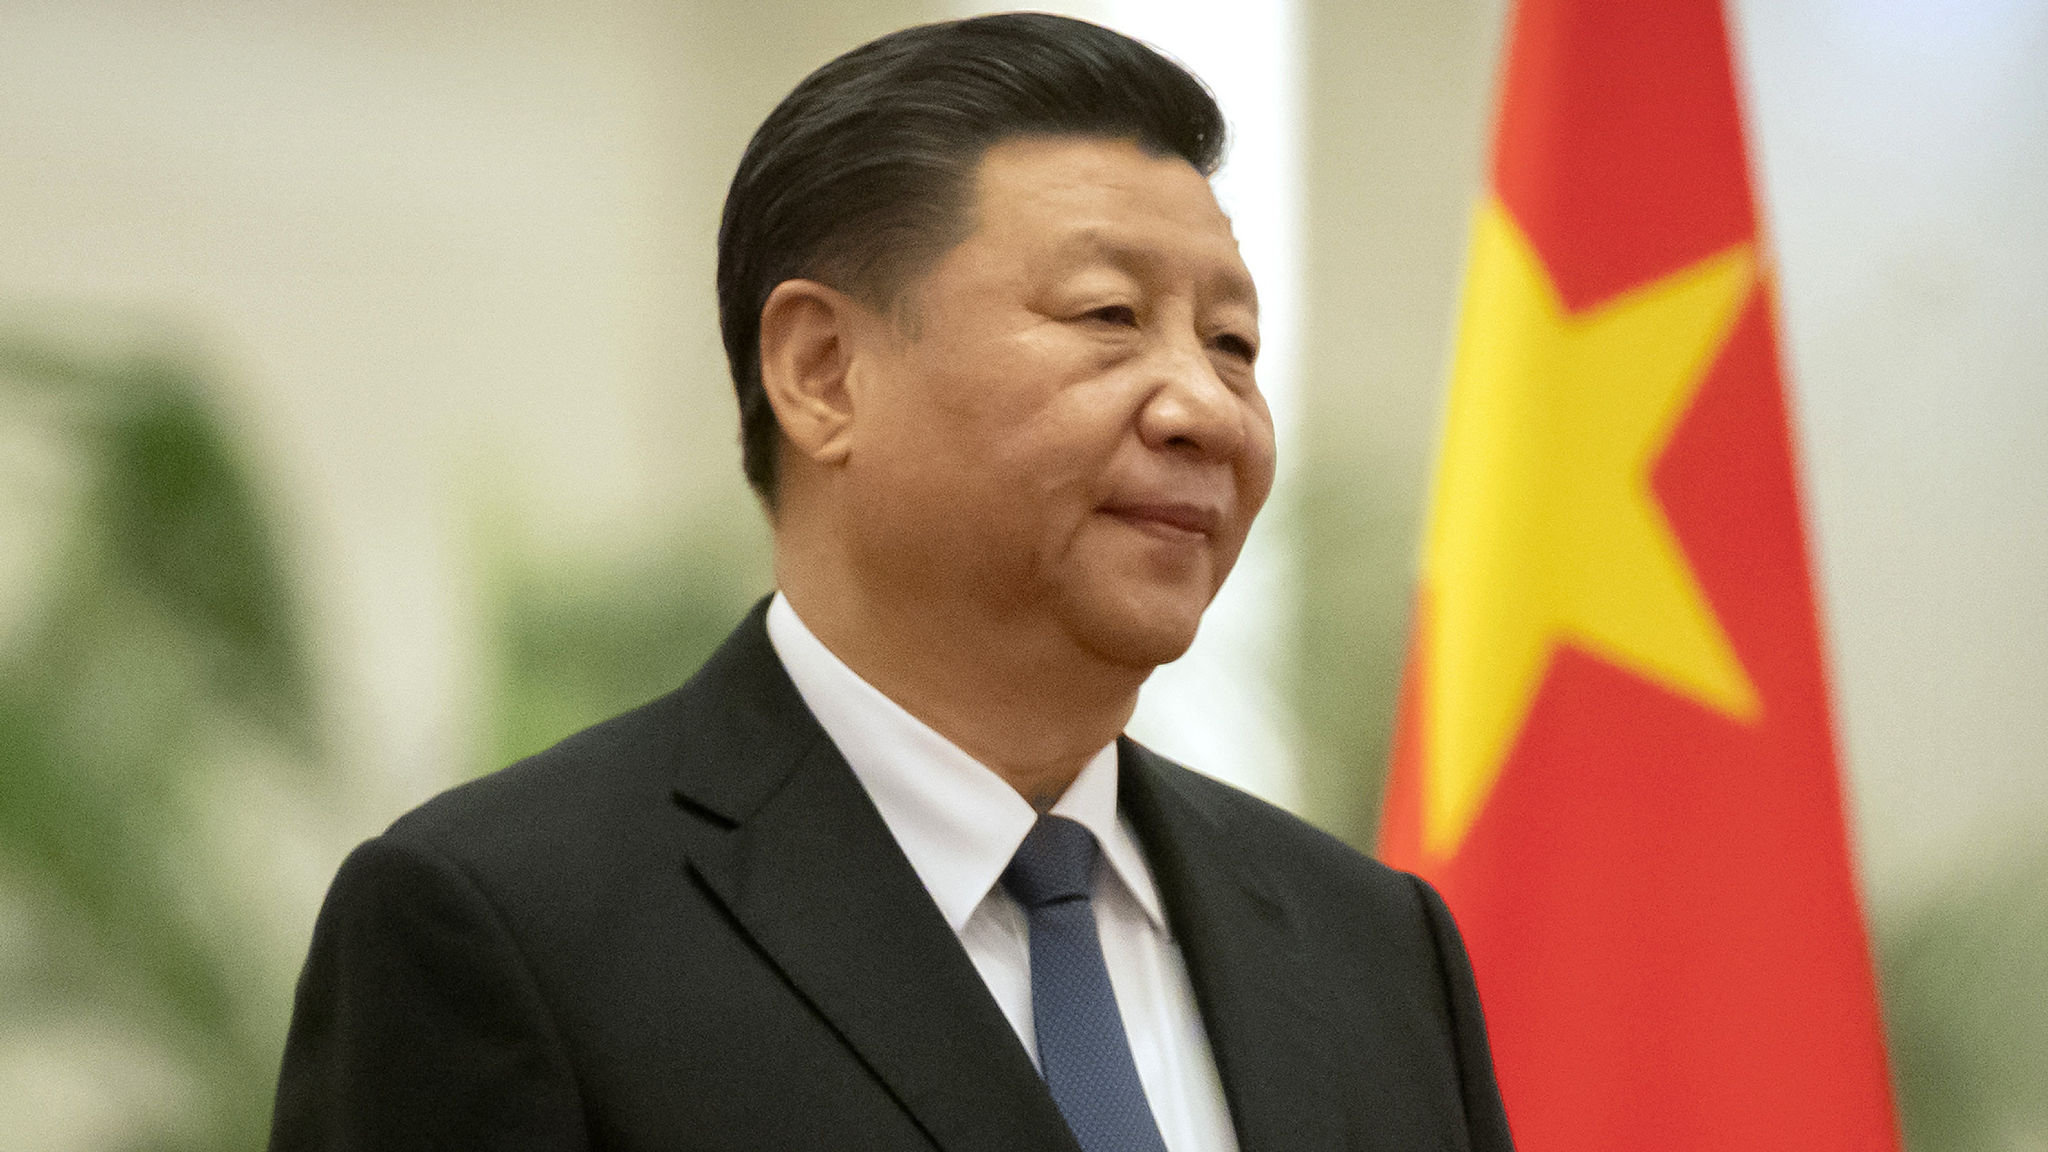 China S Xi Jinping Knew Of Coronavirus Earlier Than First Thought Financial Times Fantasy football tiers by boris chen. 2